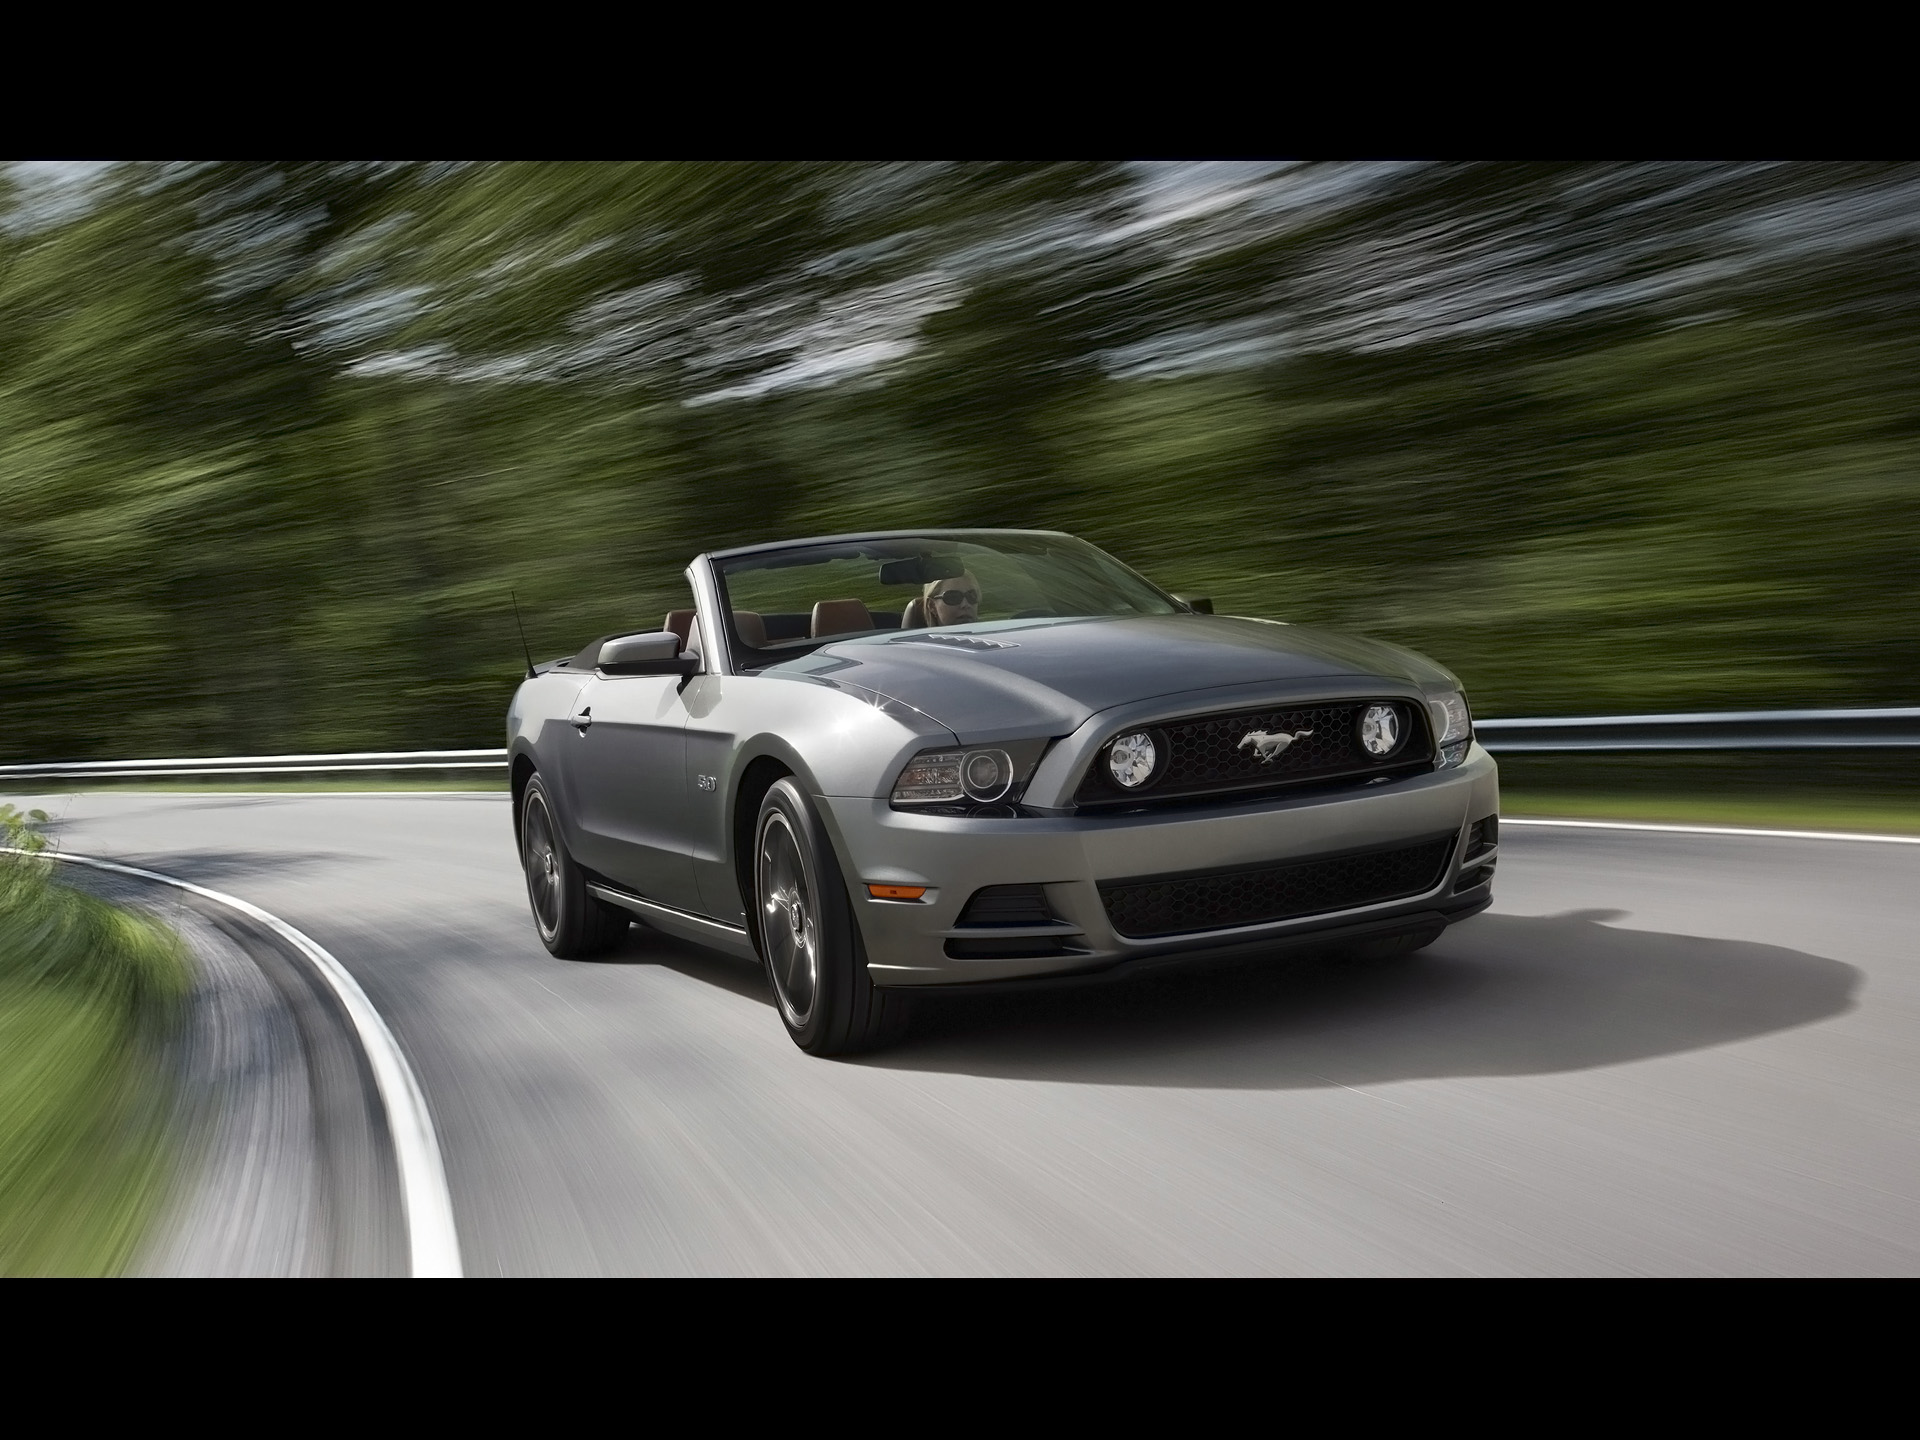 2013 Ford Mustang wallpapers 2013 Ford Mustang stock photos 1920x1440